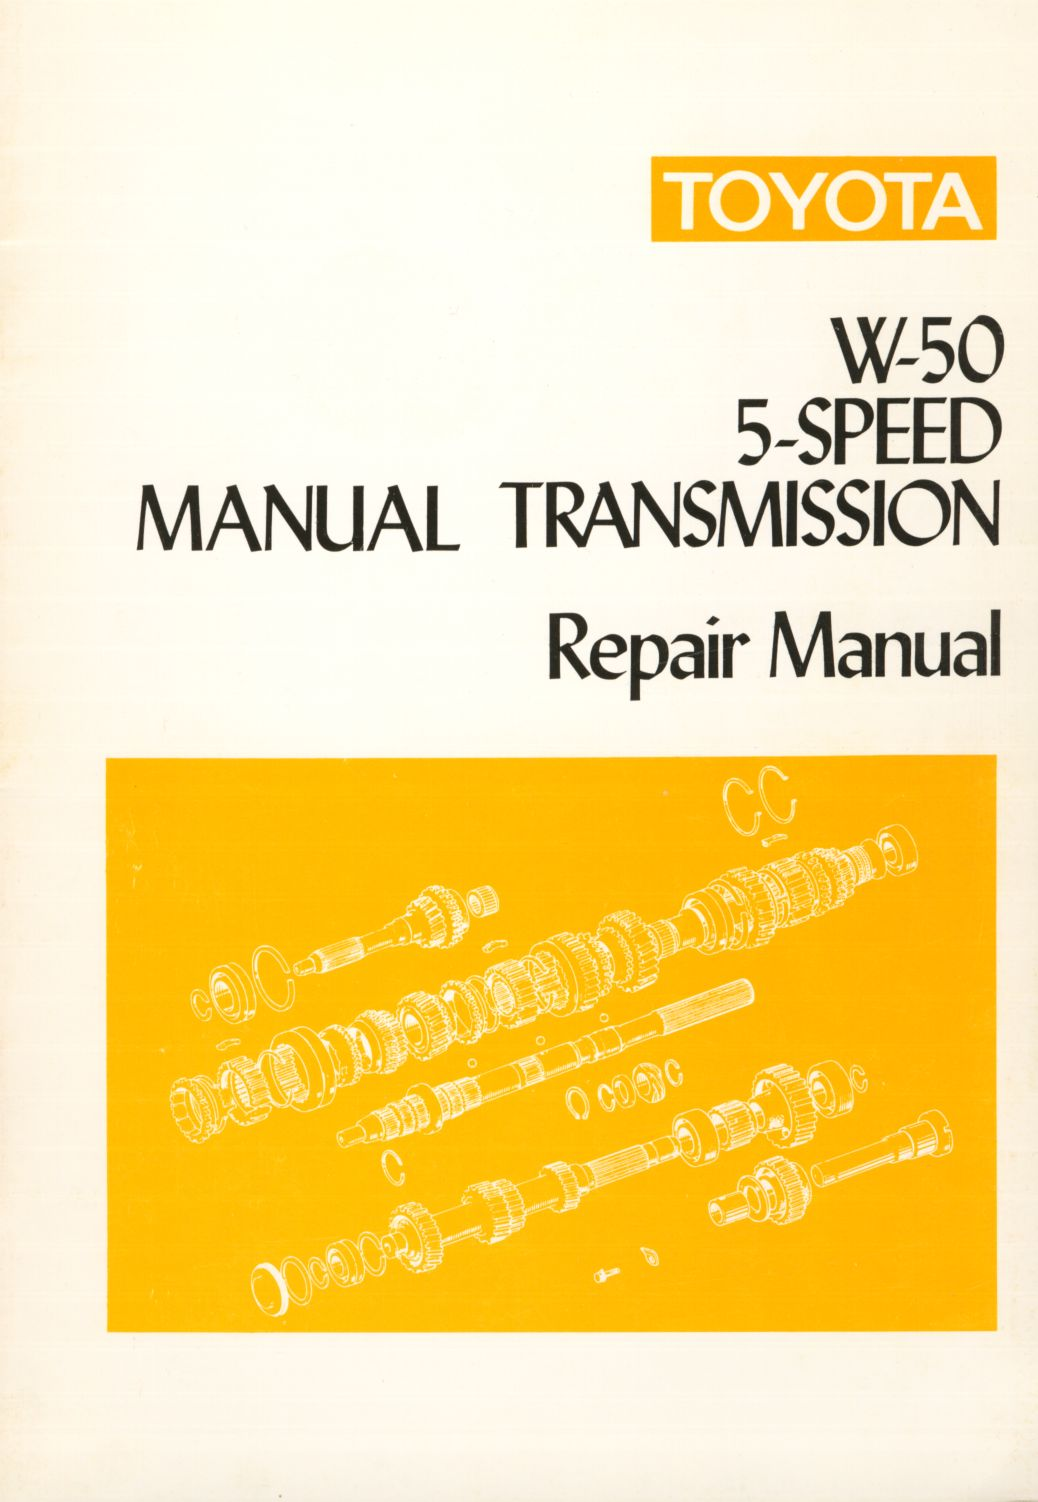 index of stepho manuals toyota gearbox w50 rh members iinet net au toyota cvt transmission repair manual toyota w55 transmission repair manual